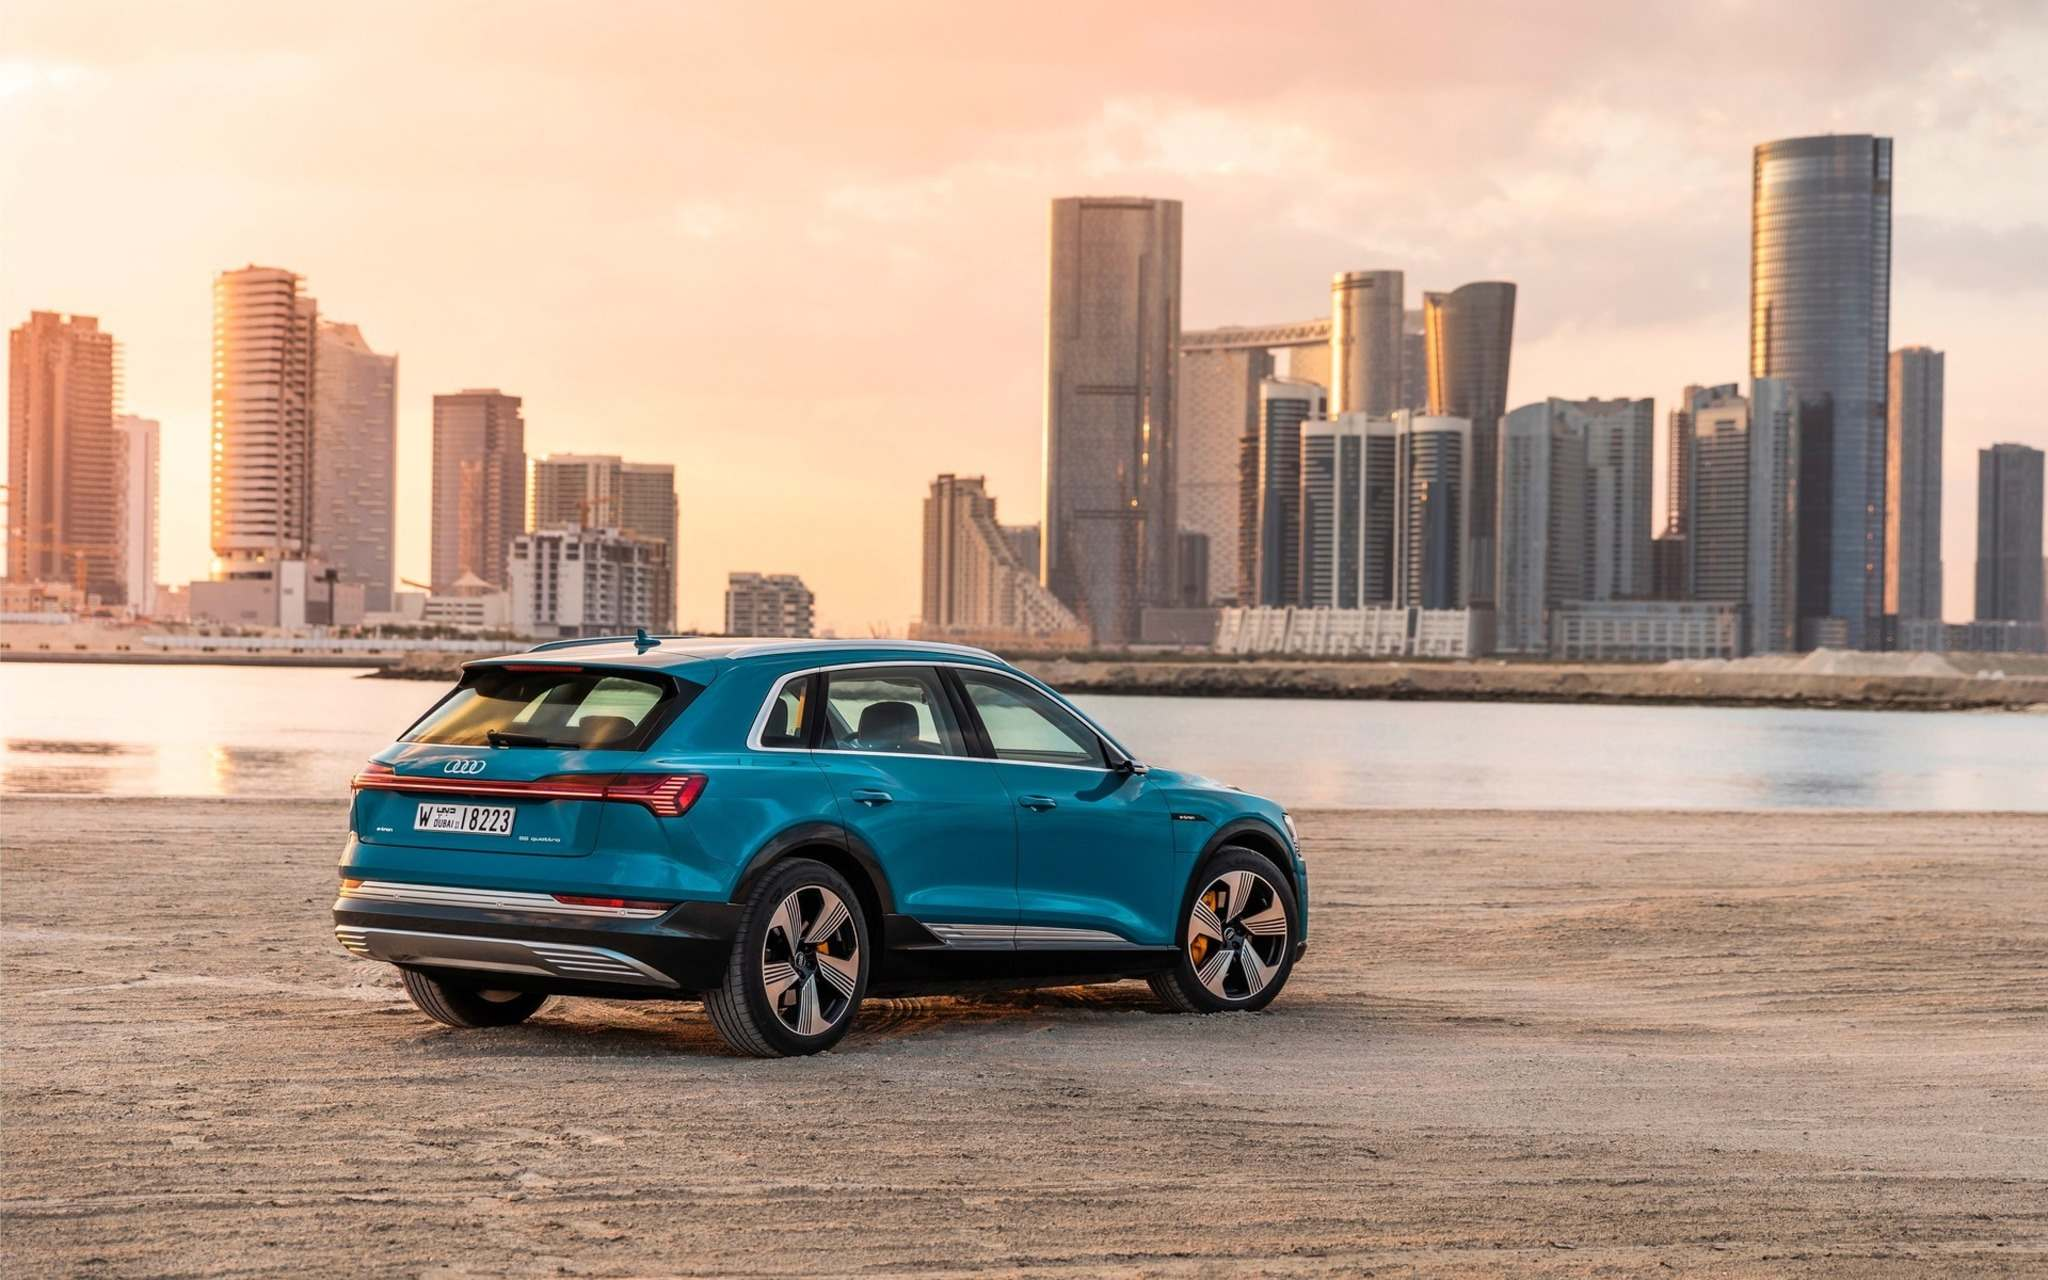 This vehicle will challenge the well-established Tesla Model X and Jaguar I-PACE, as well as Mercedes-Benz's upcoming EQC in the new all-electric SUV segment.